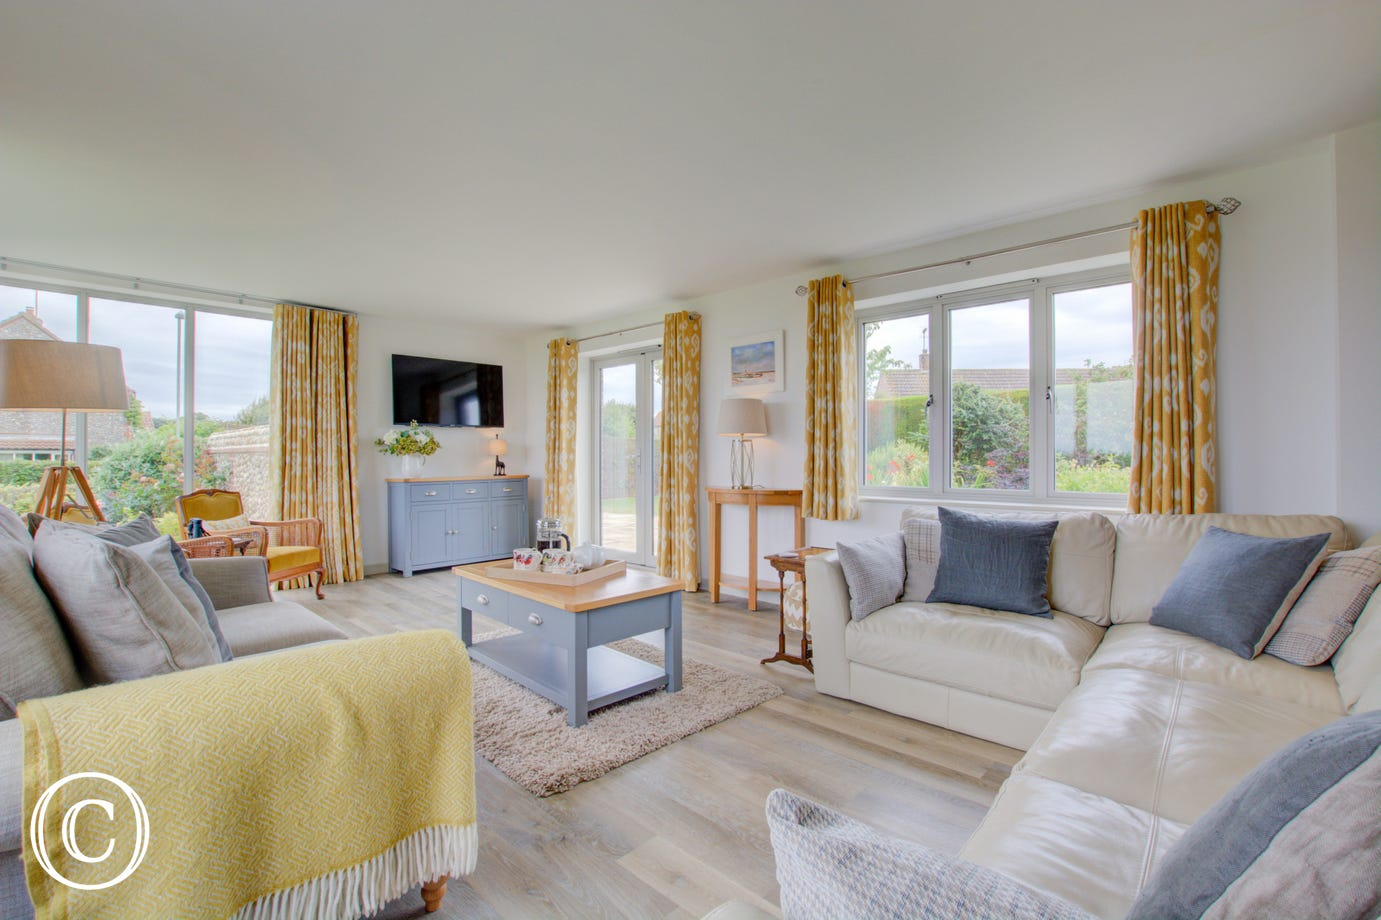 The sitting room is an absolutely stunning room, decorated with attention to detail